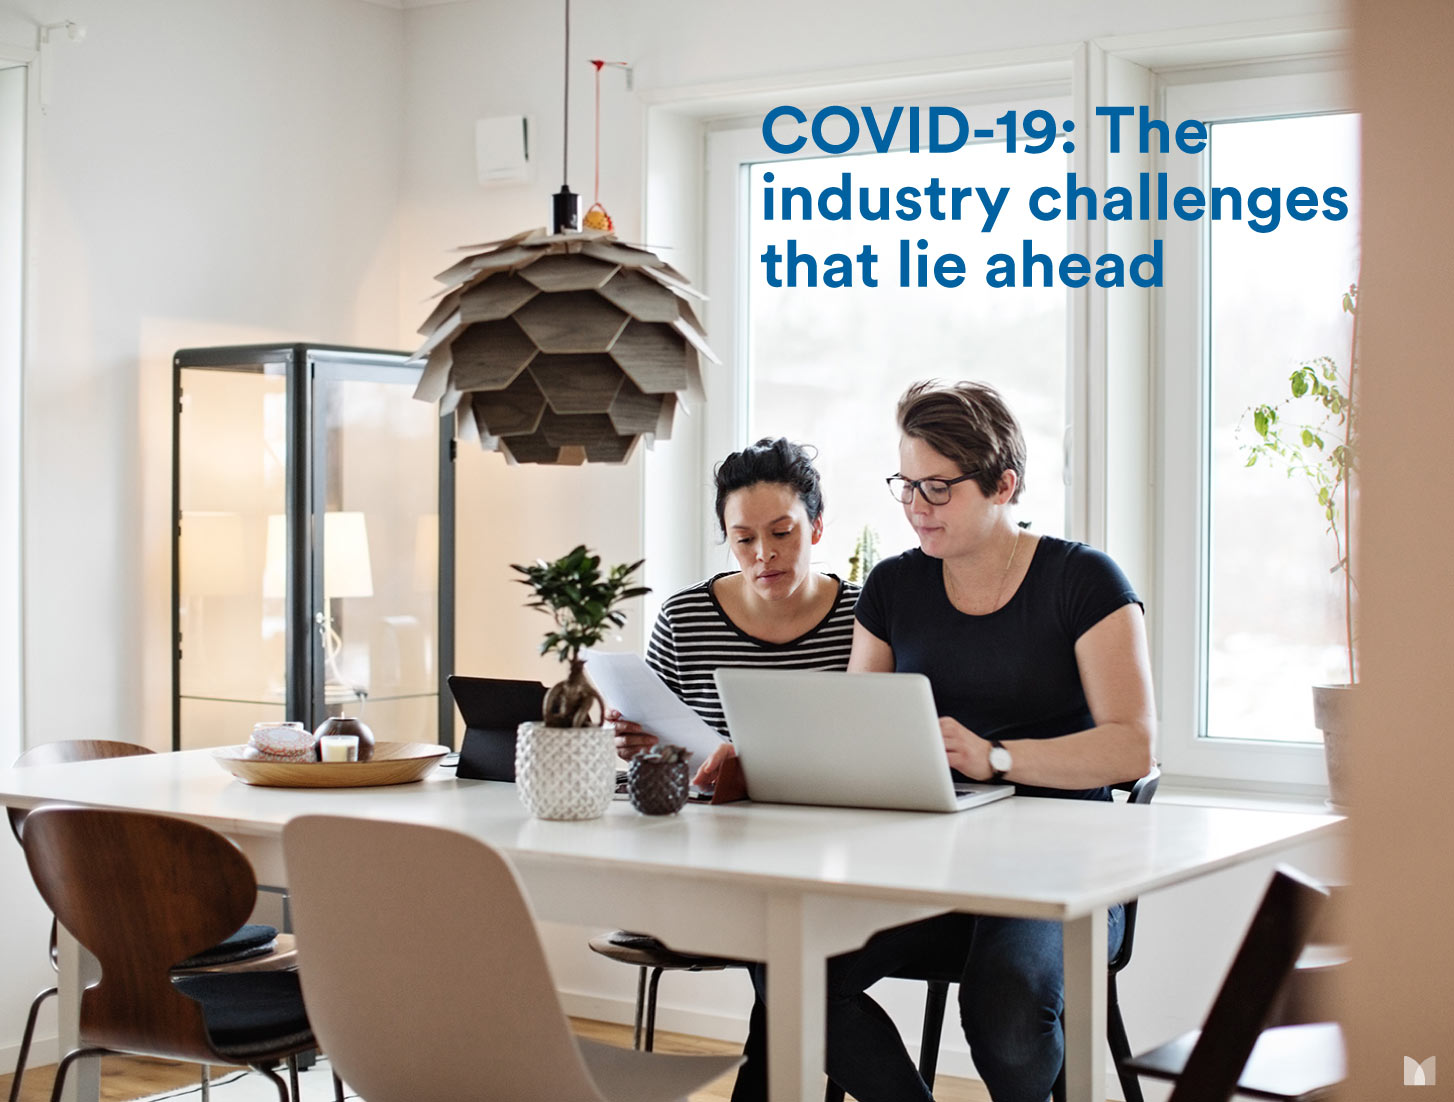 COVID-19: The industry challenges that lie ahead